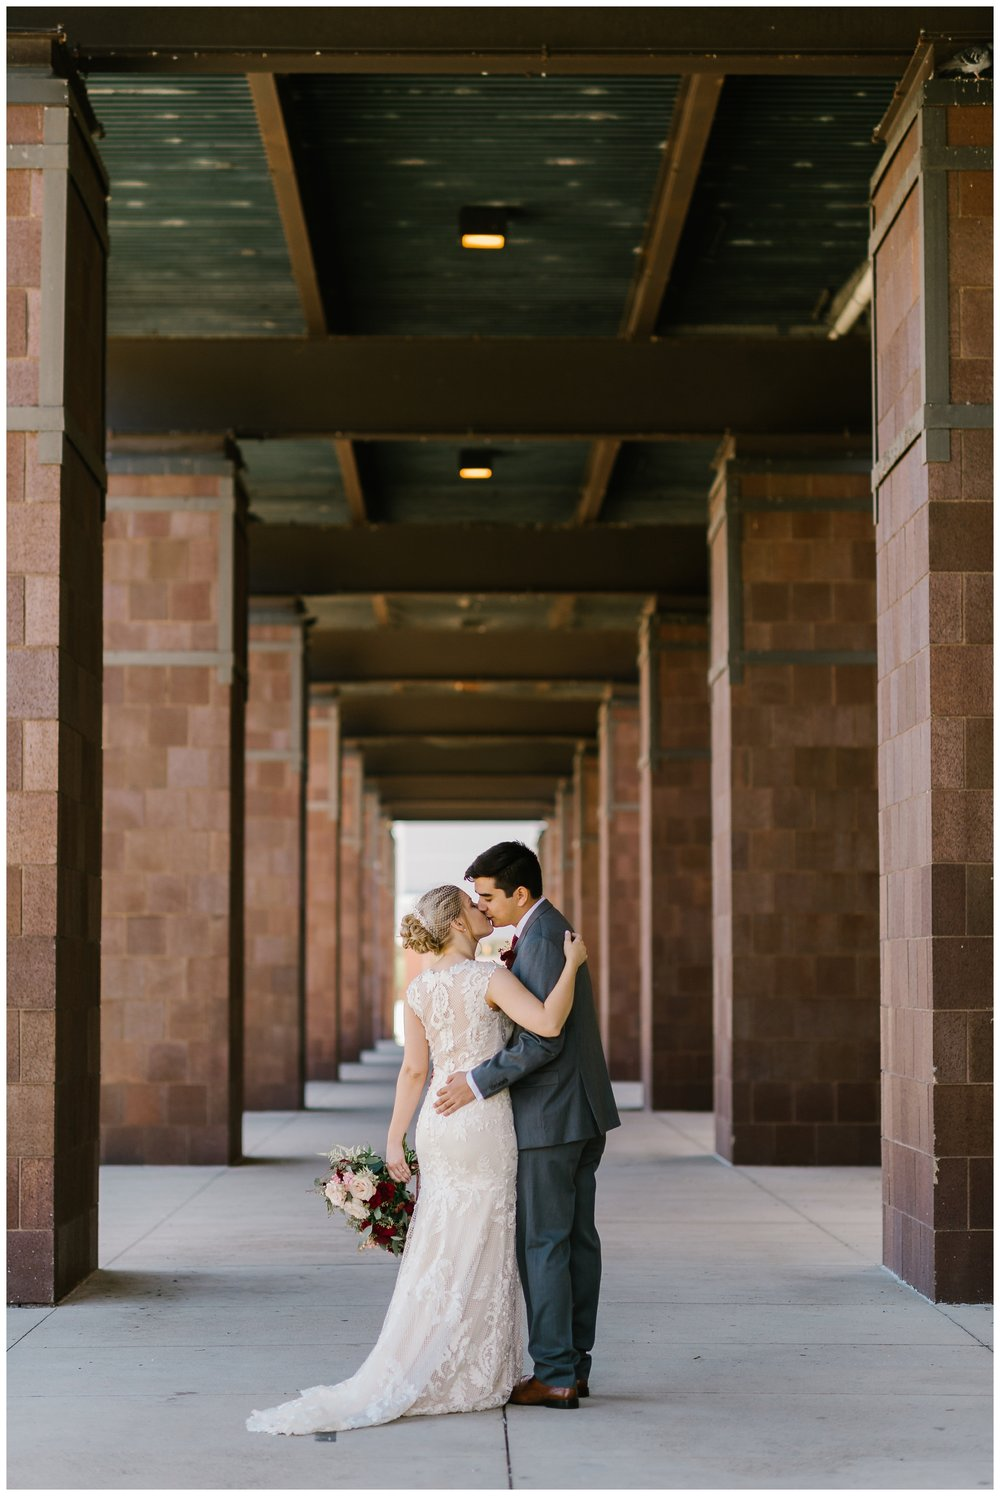 Rebecca_Shehorn_Photography_Indianapolis_Wedding_Photographer_7339.jpg